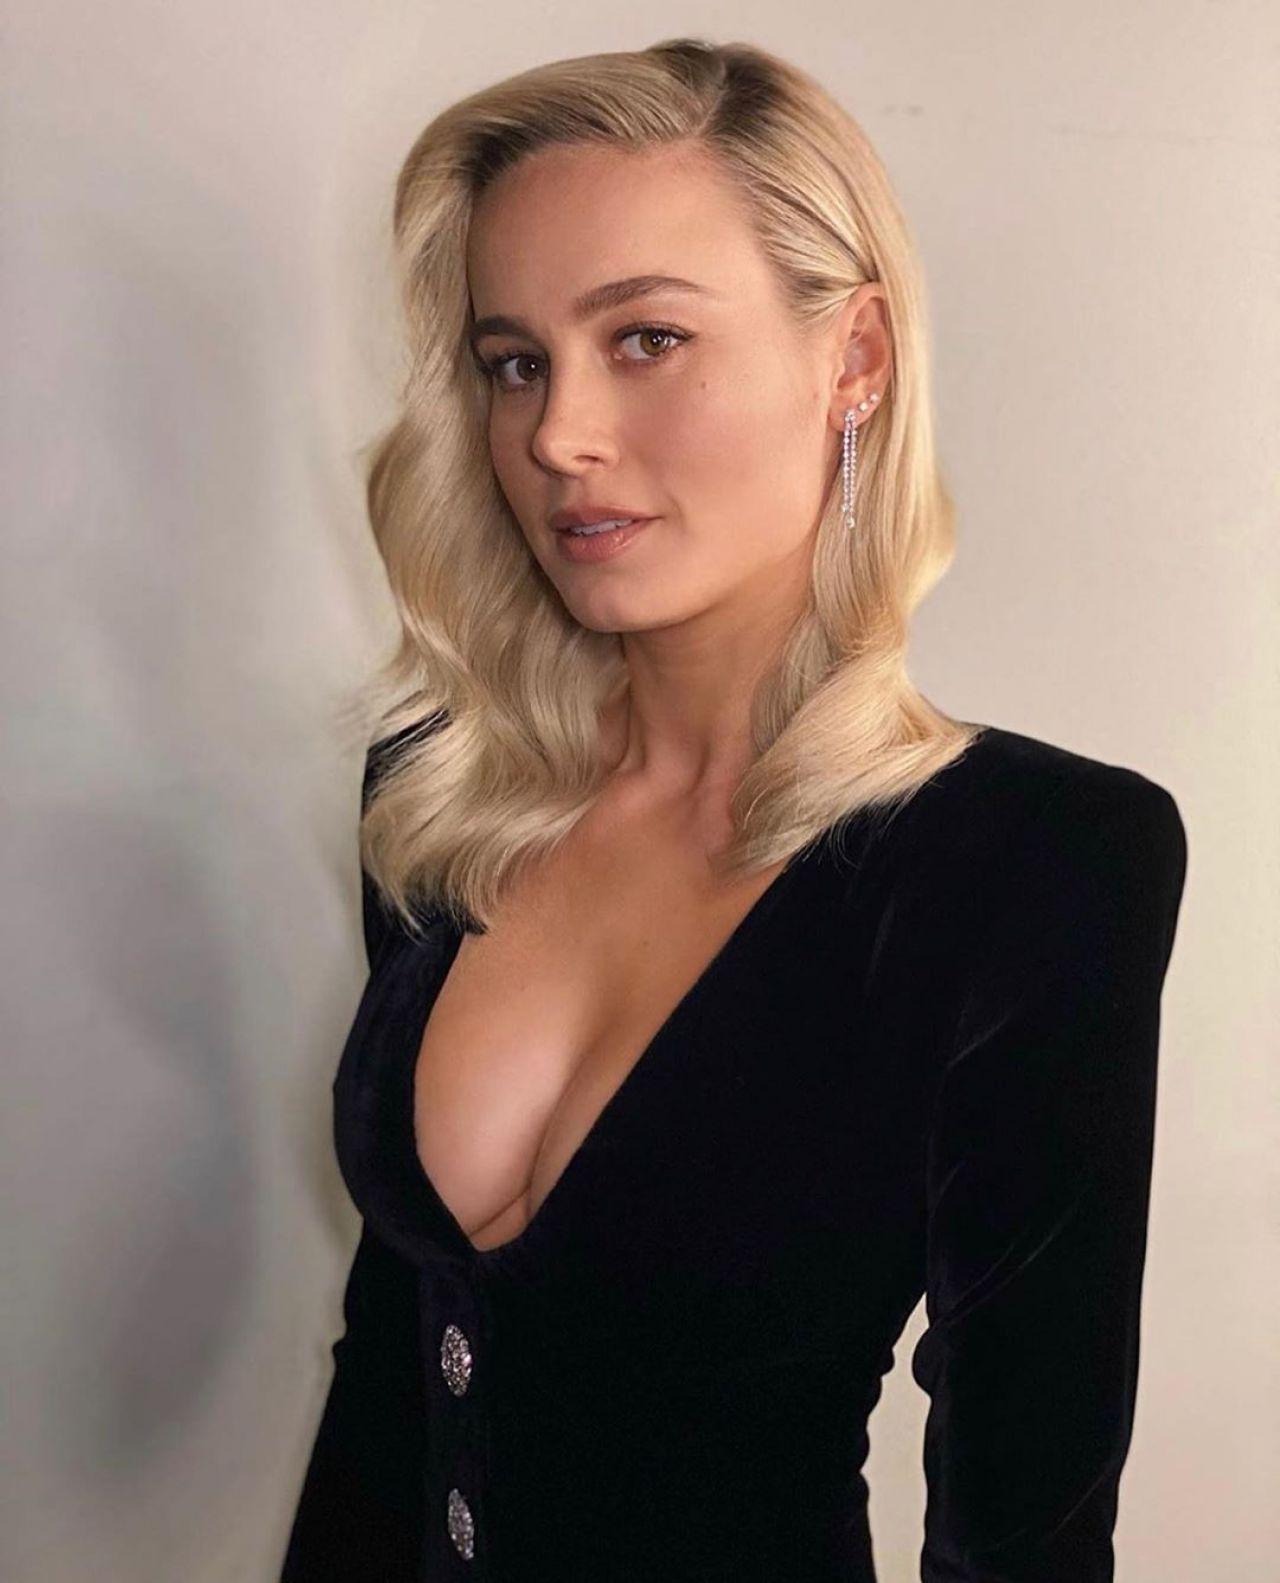 Who Did Brie Larson Go As For Halloween 2020 Brie Larson photoshoot in 2020 | Brie larson, Beautiful female